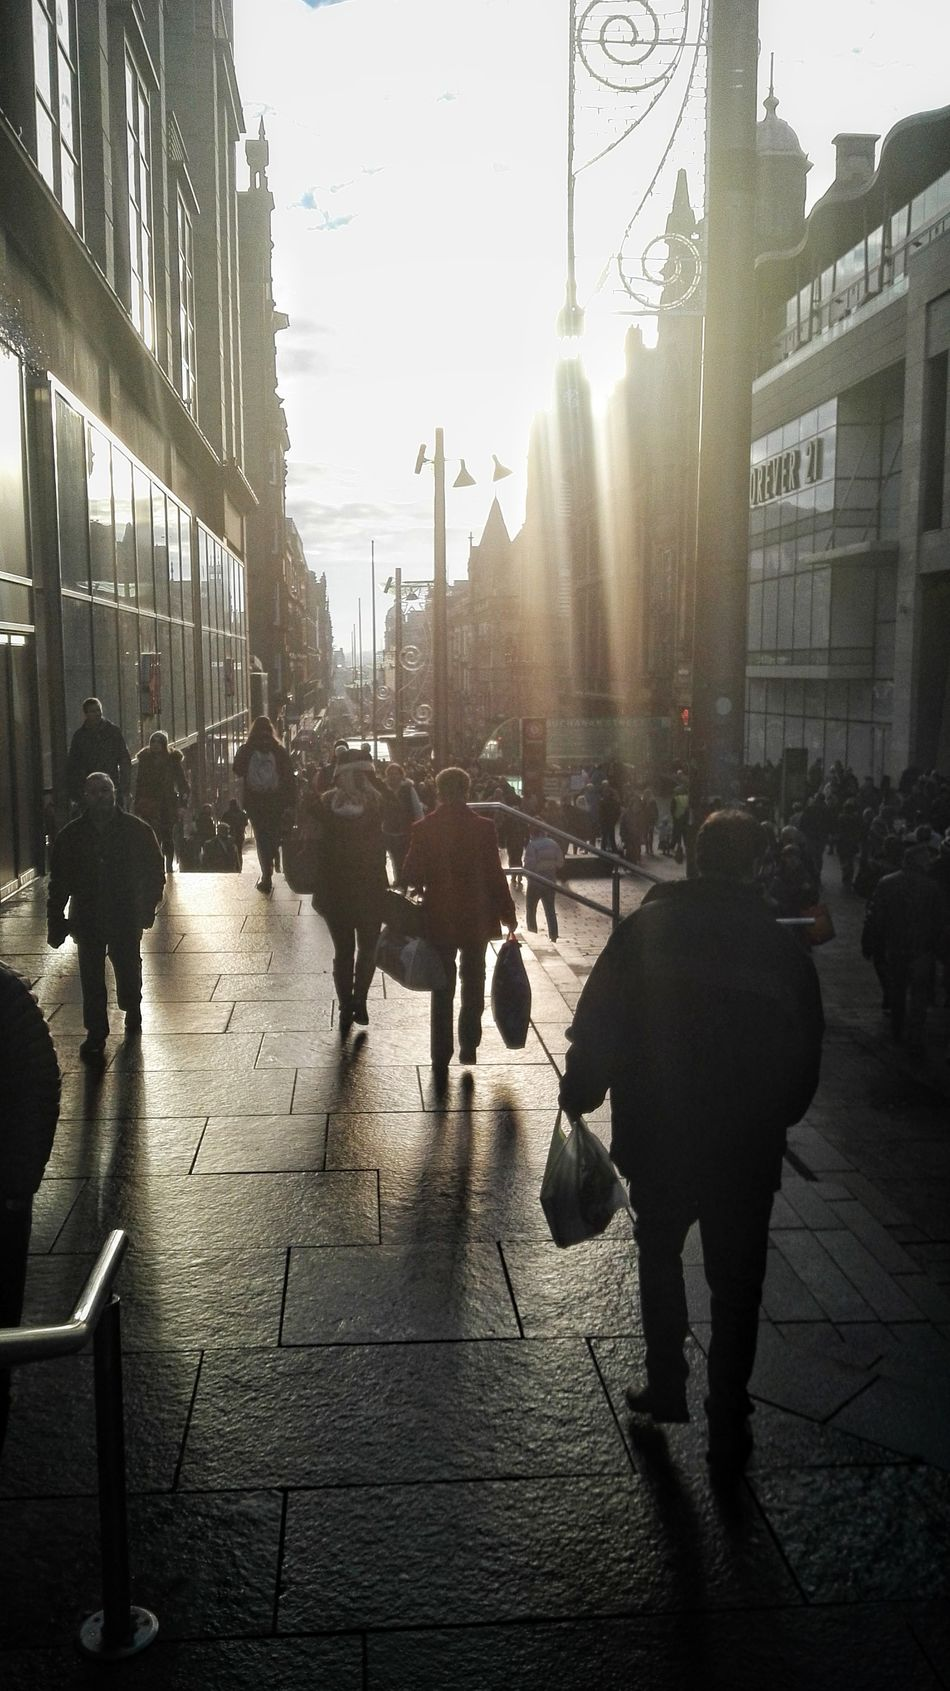 City Street City Street Sunlight City Life Walking Building Exterior Built Structure Shadow Large Group Of People Outdoors People Architecture Business Men Adults Only Adult Day Only Men